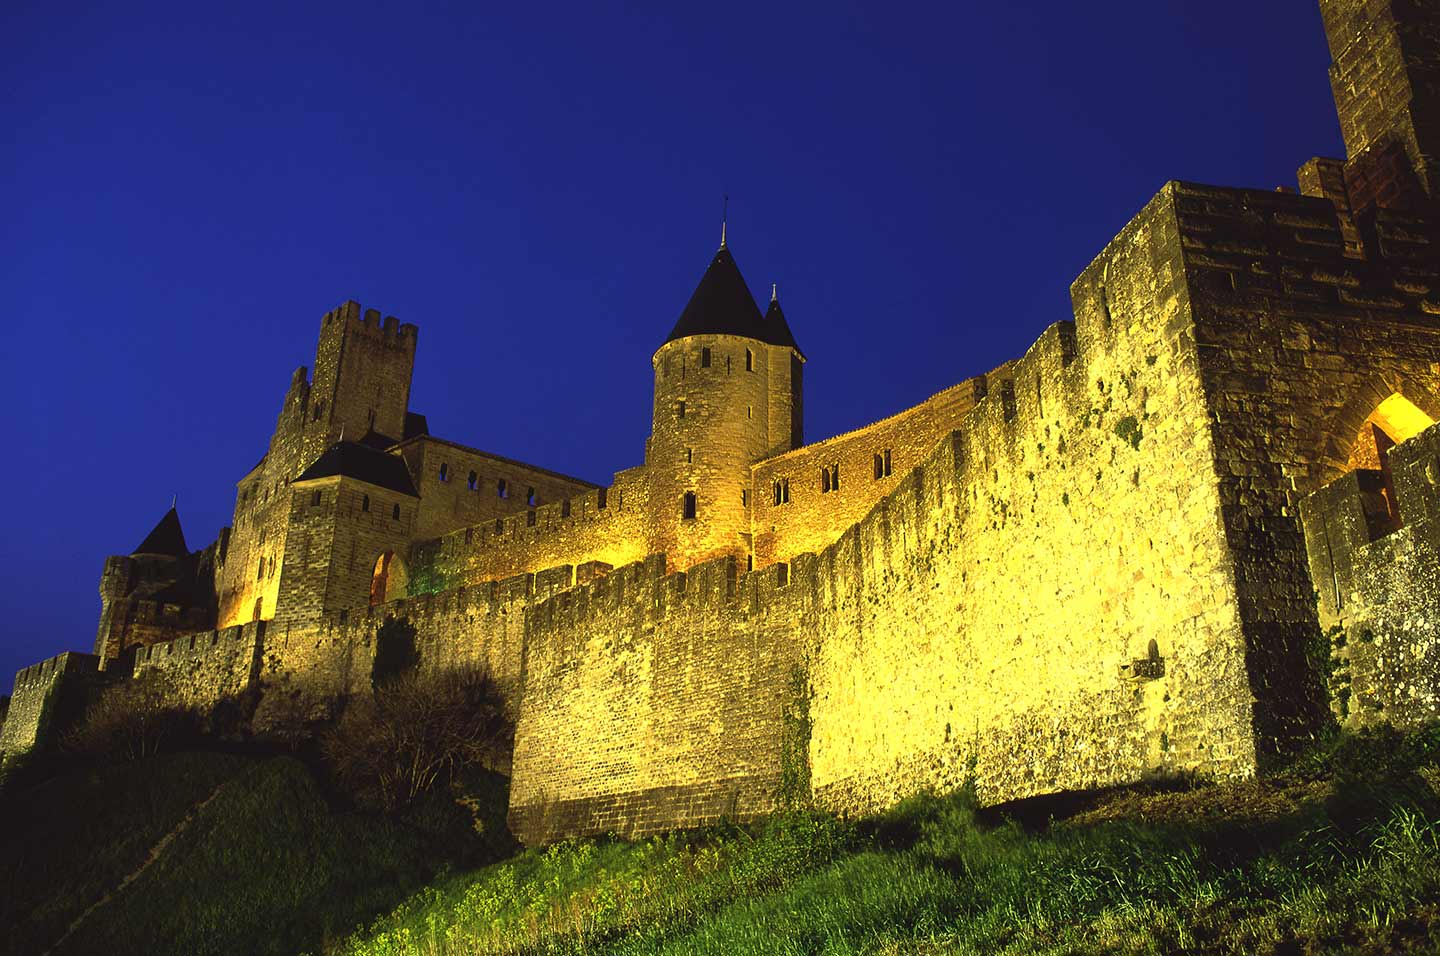 Image of the Cité at Carcassonne at night